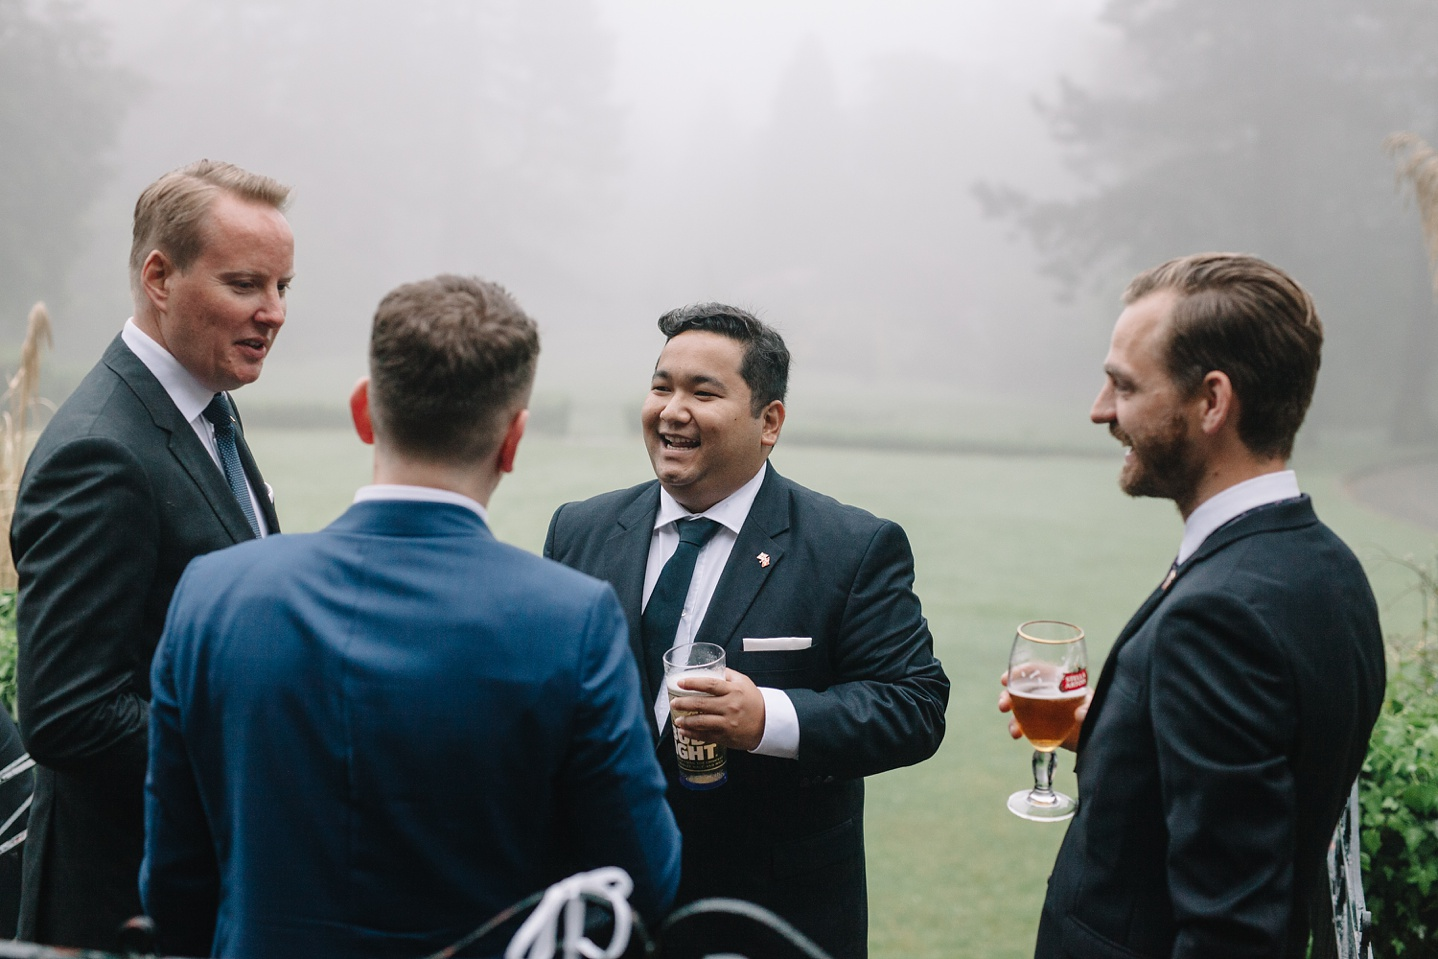 guests laughing in the gardens of Whirlowbrook Hall